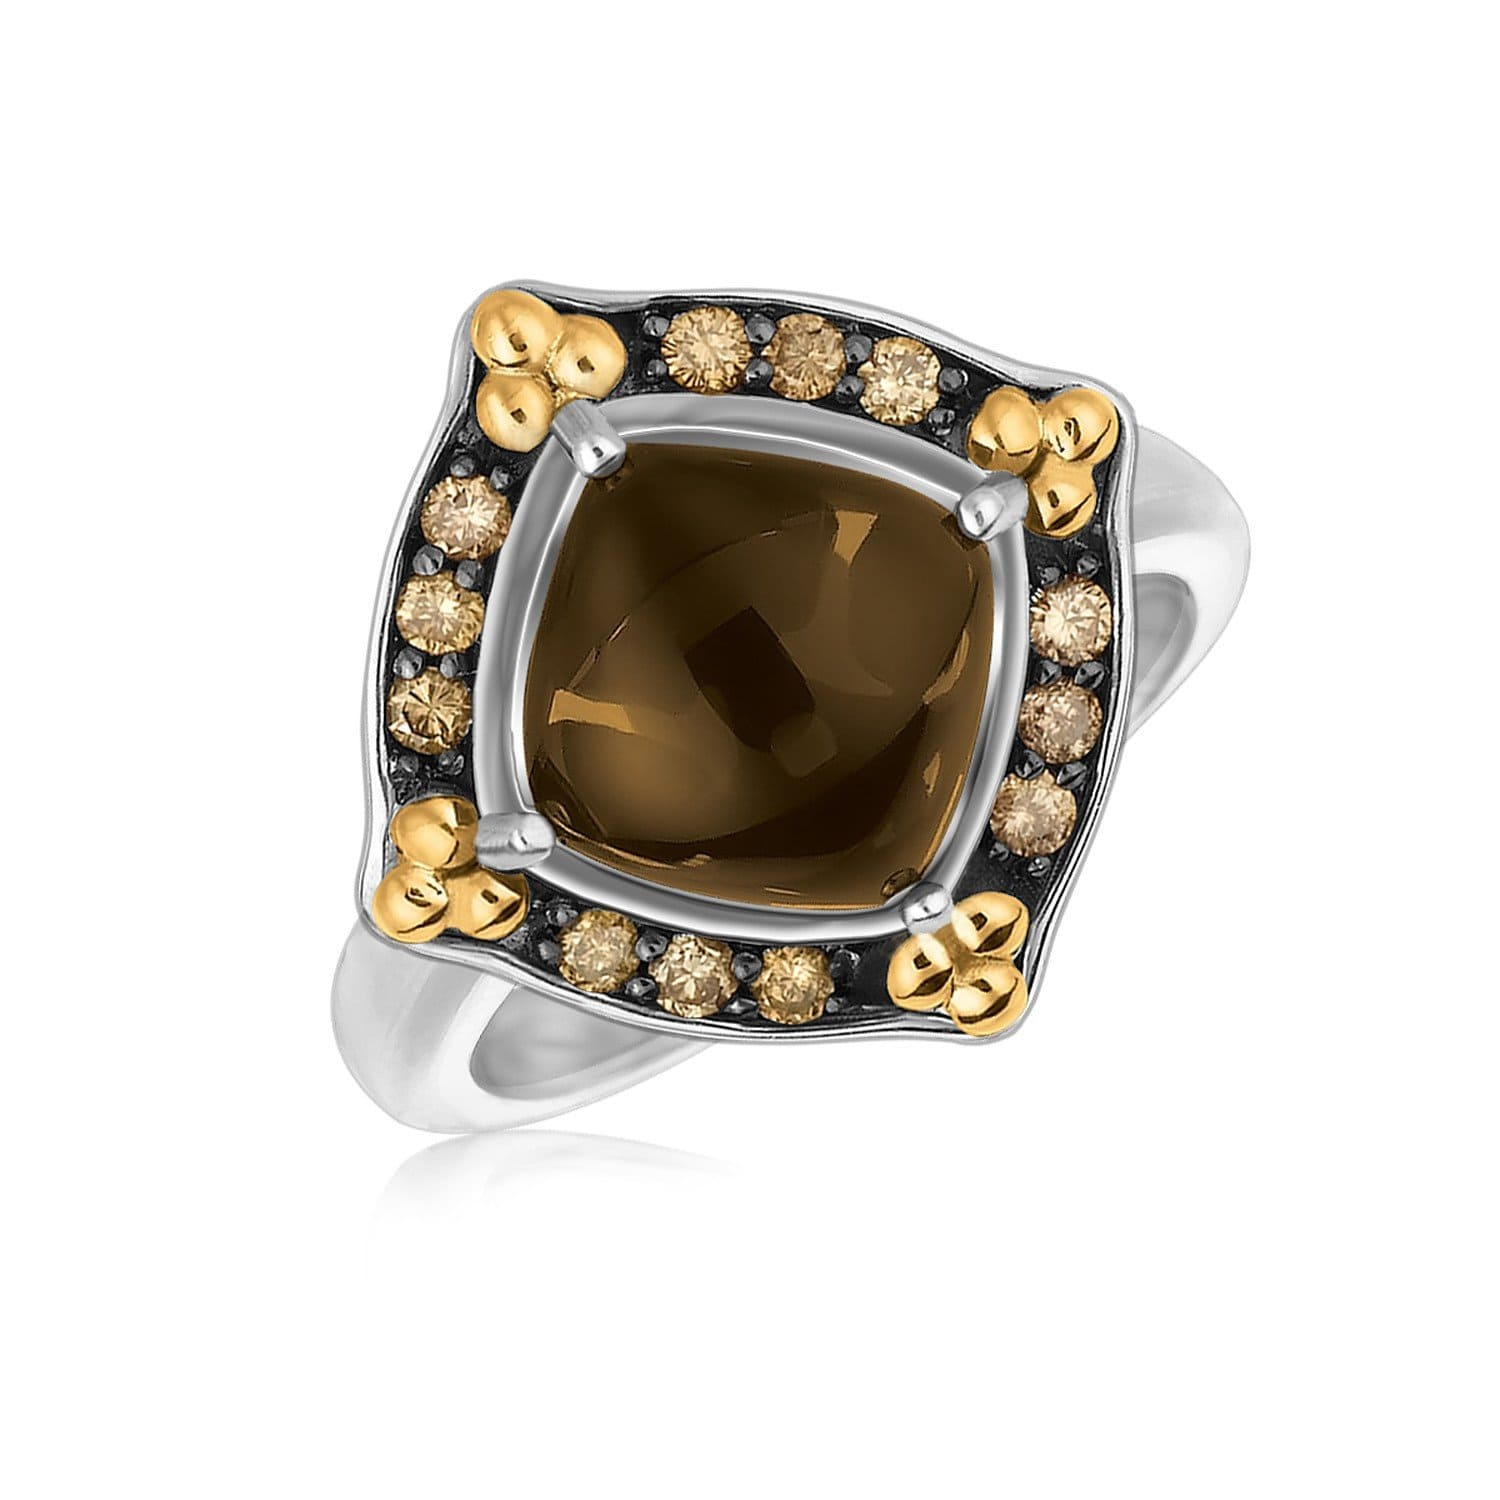 18K Yellow Gold and Sterling Silver Smokey Quartz and Coffee Diamonds Ring Size 9